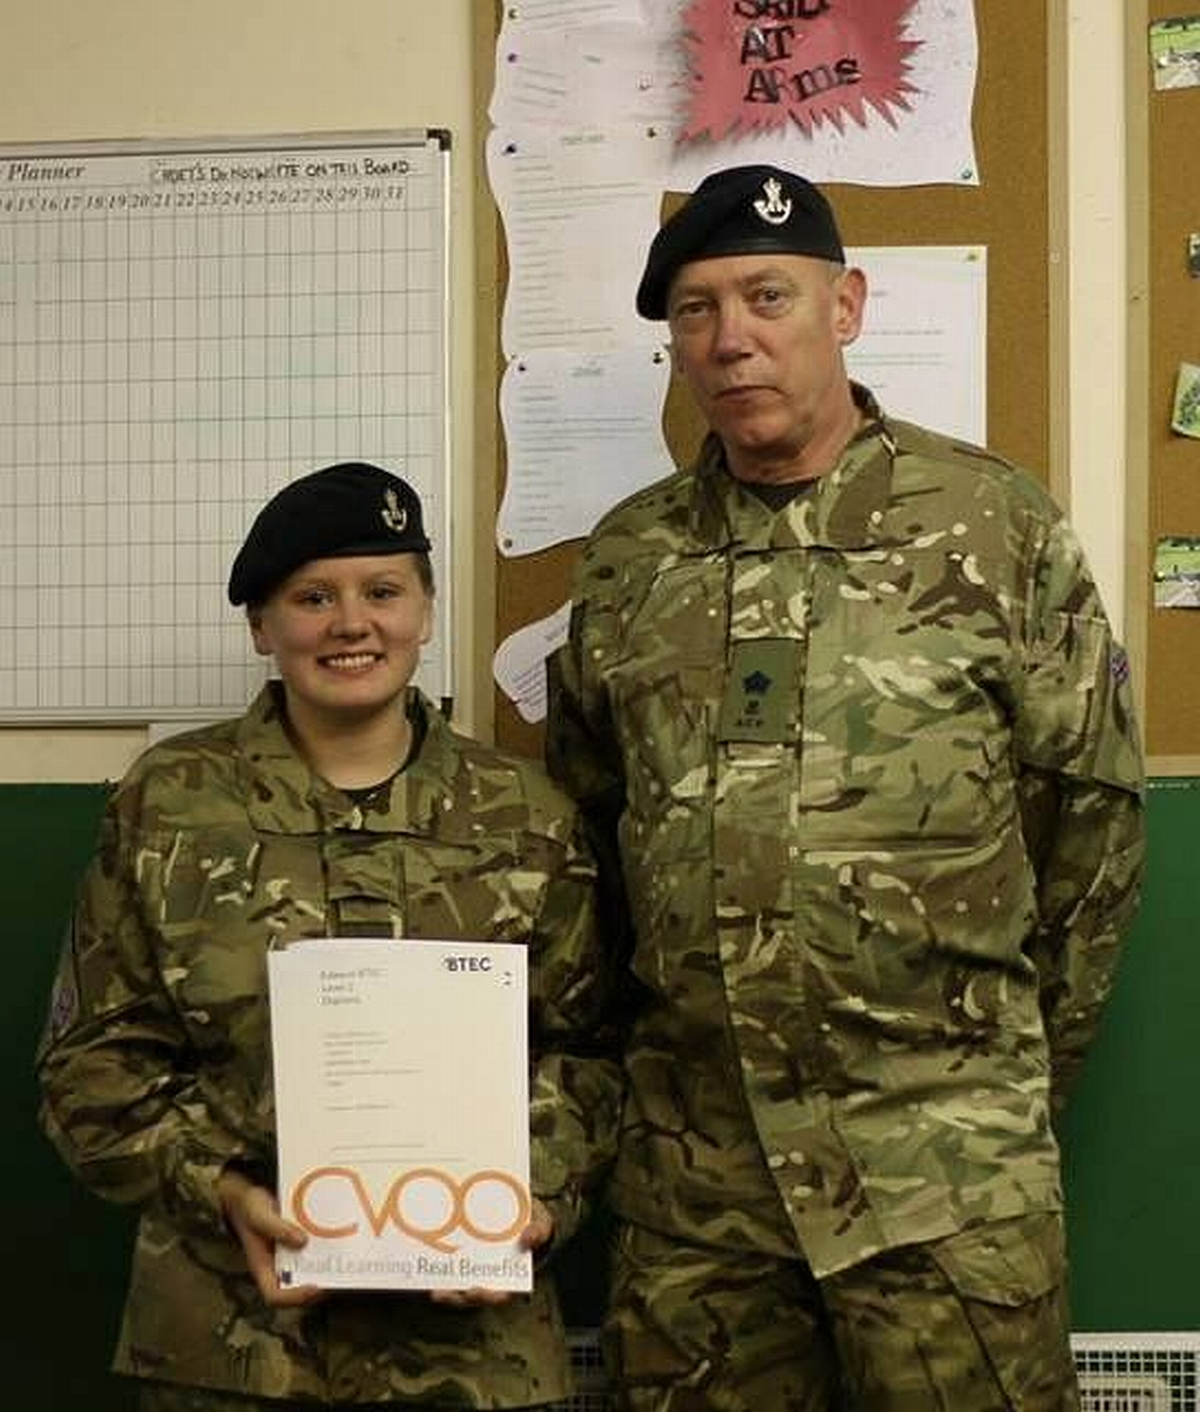 Cadet Shannon Came receives her BTEC certificate from adult instructor Major Trunks at Cannington Platoon.